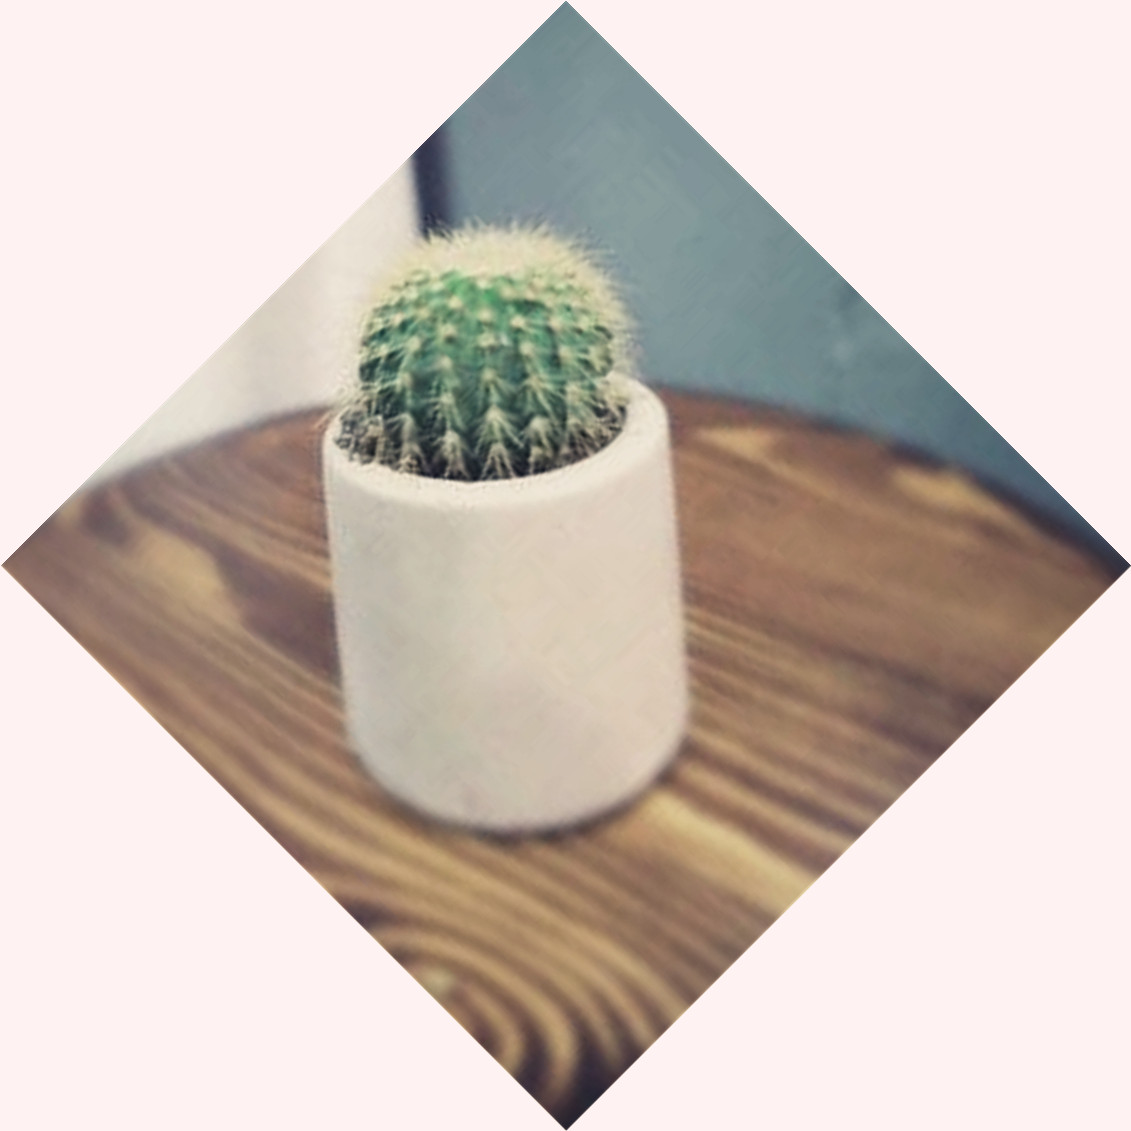 Round 3D Silicone Pot Mold for Concrete Flower Vase Cement Planter Succulent Plants Mould